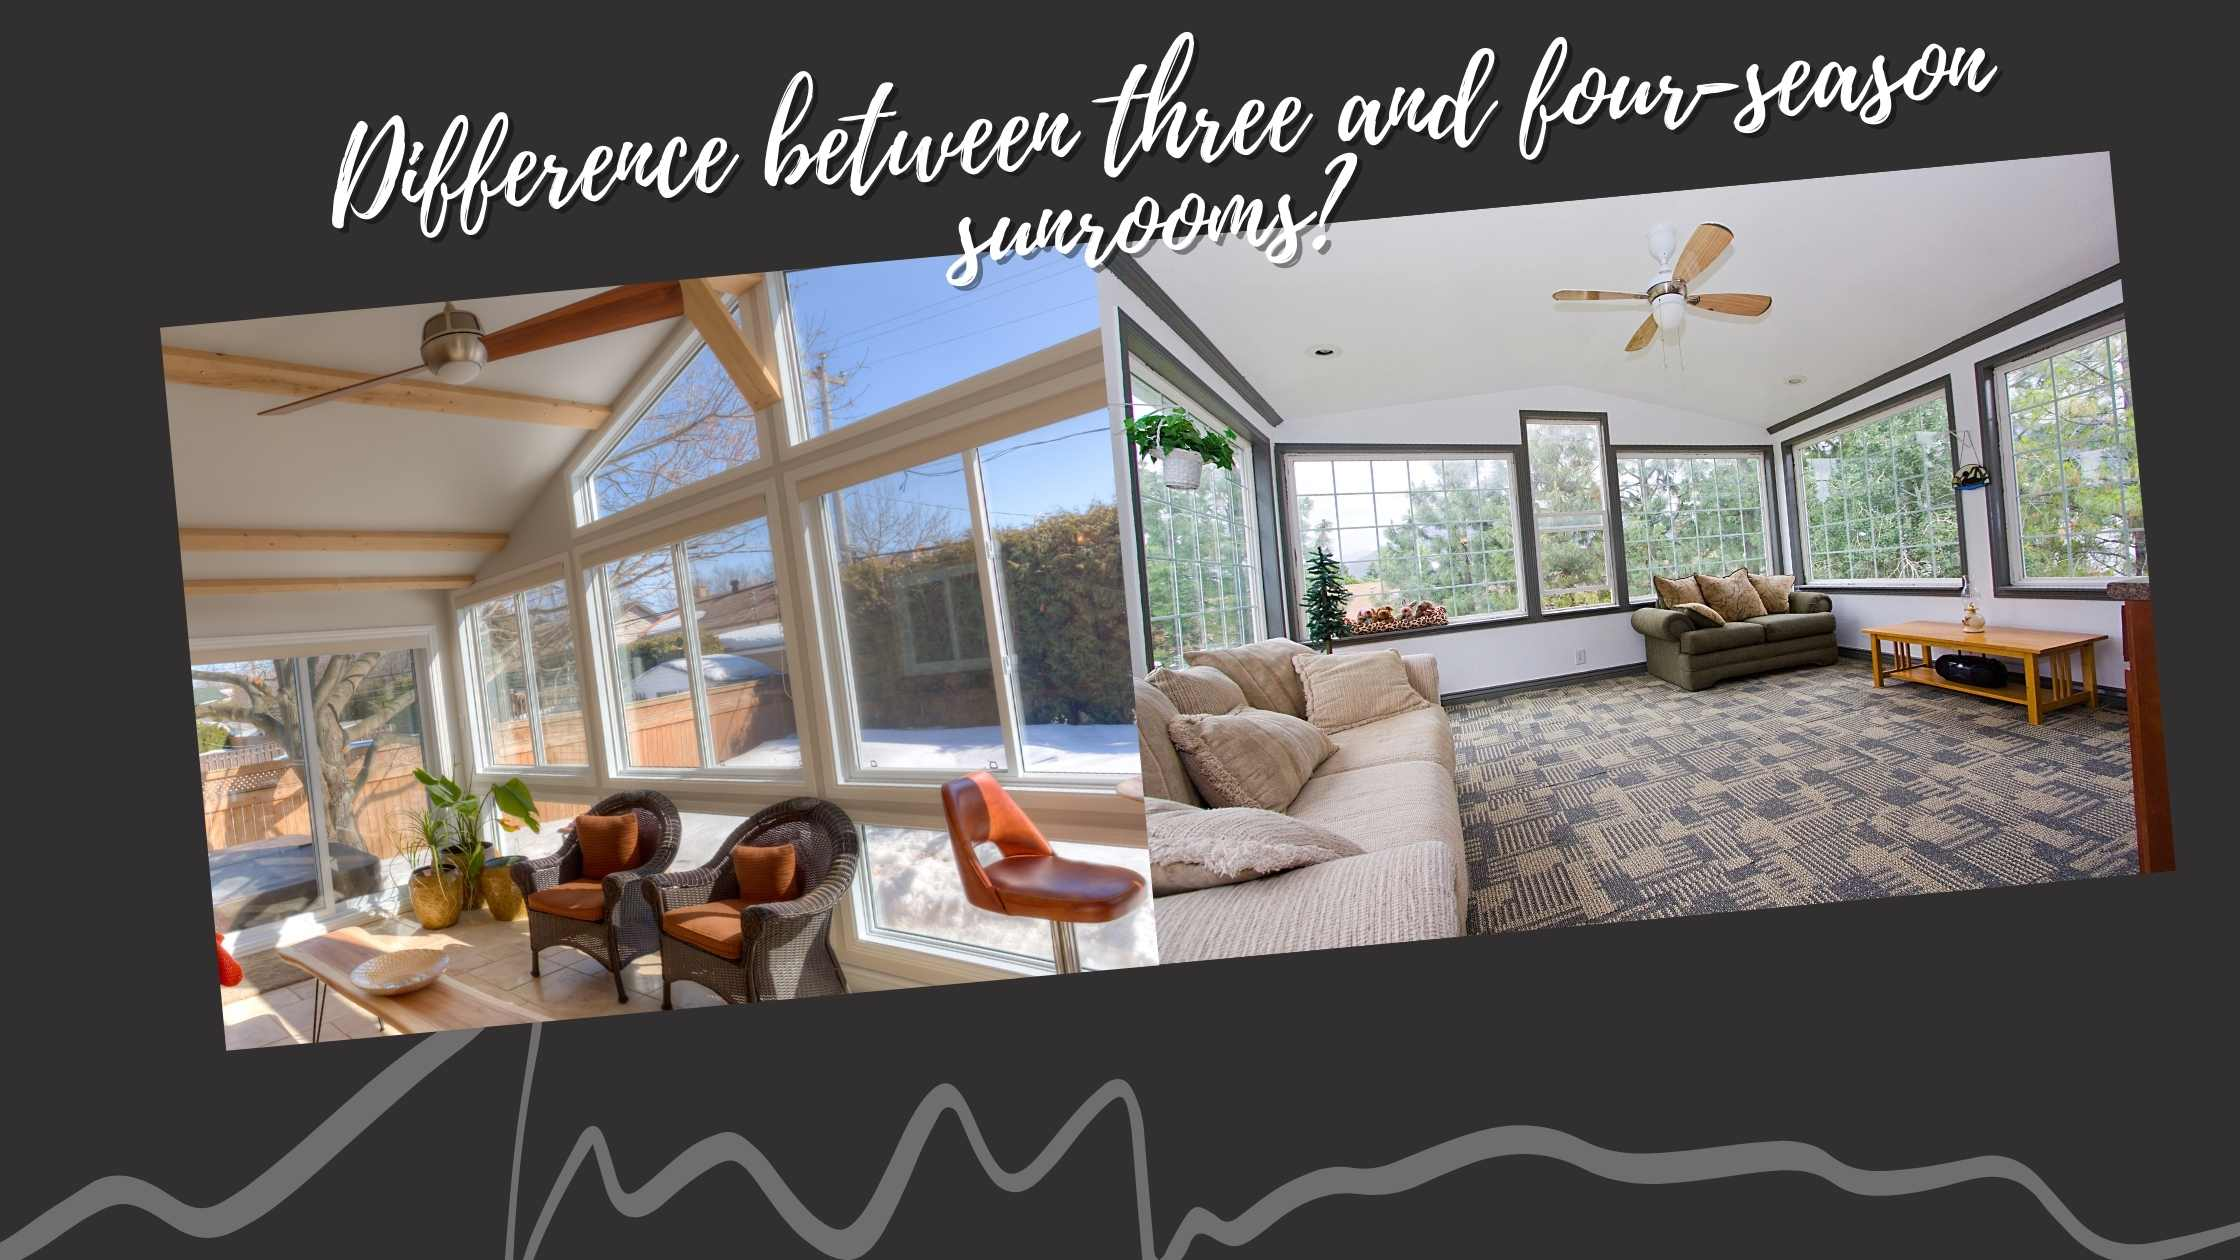 What is The Difference Between 3 Season and 4 Season Sunroom? Which one is The Best?